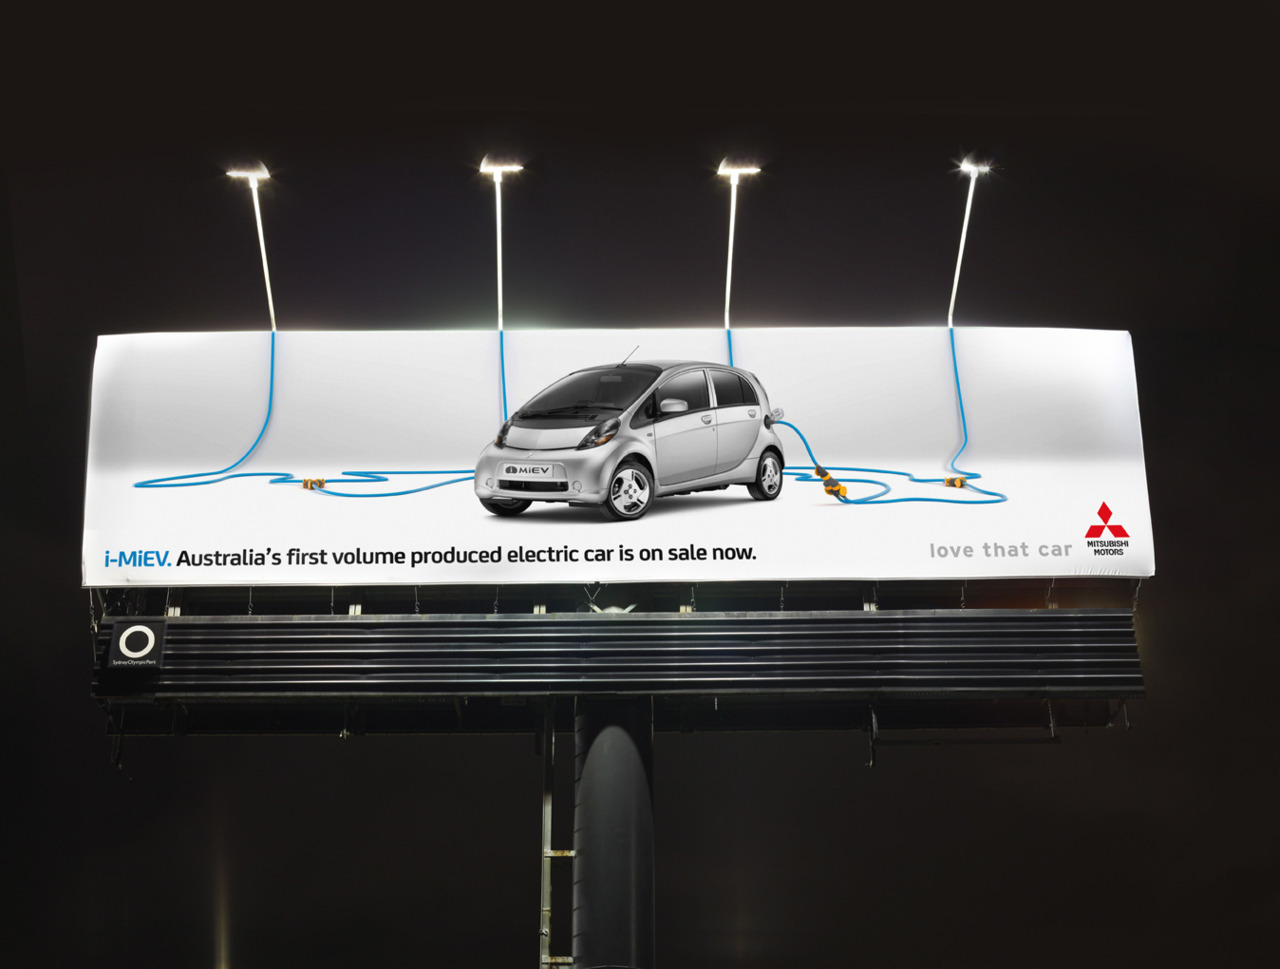 Ambient Media billboard at night :)